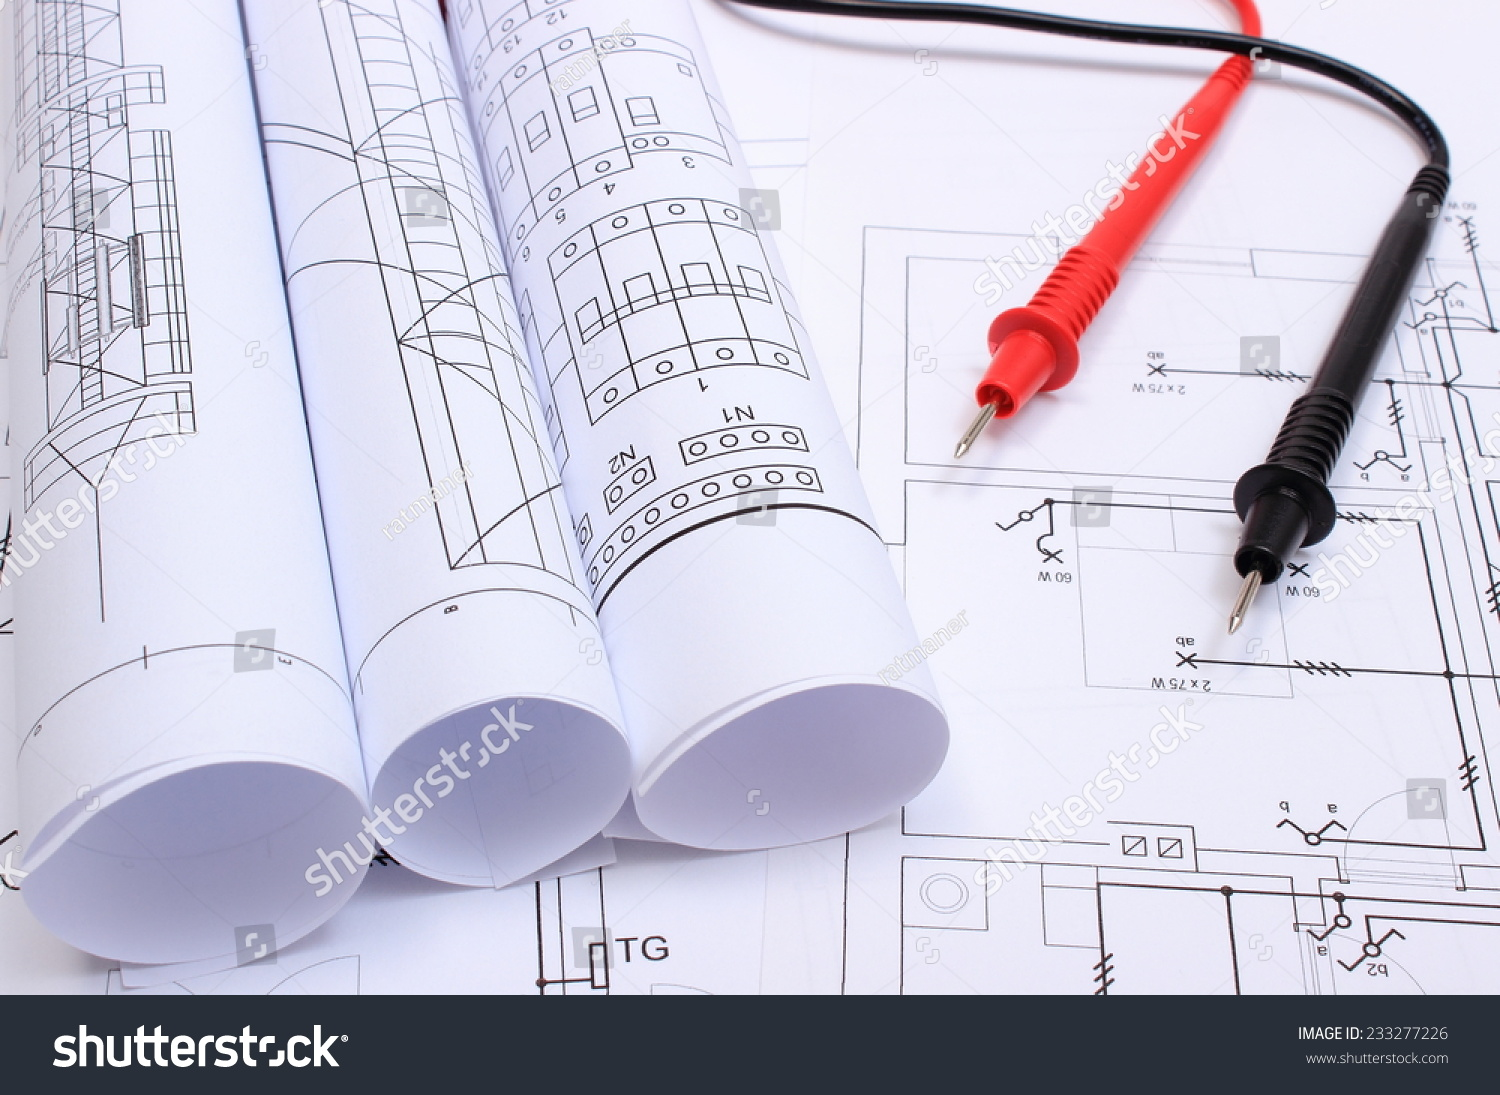 Rolls Electrical Diagrams Cables Multimeter Lying Stock Photo Edit Diagram L N Of And On Construction Drawing House Drawings